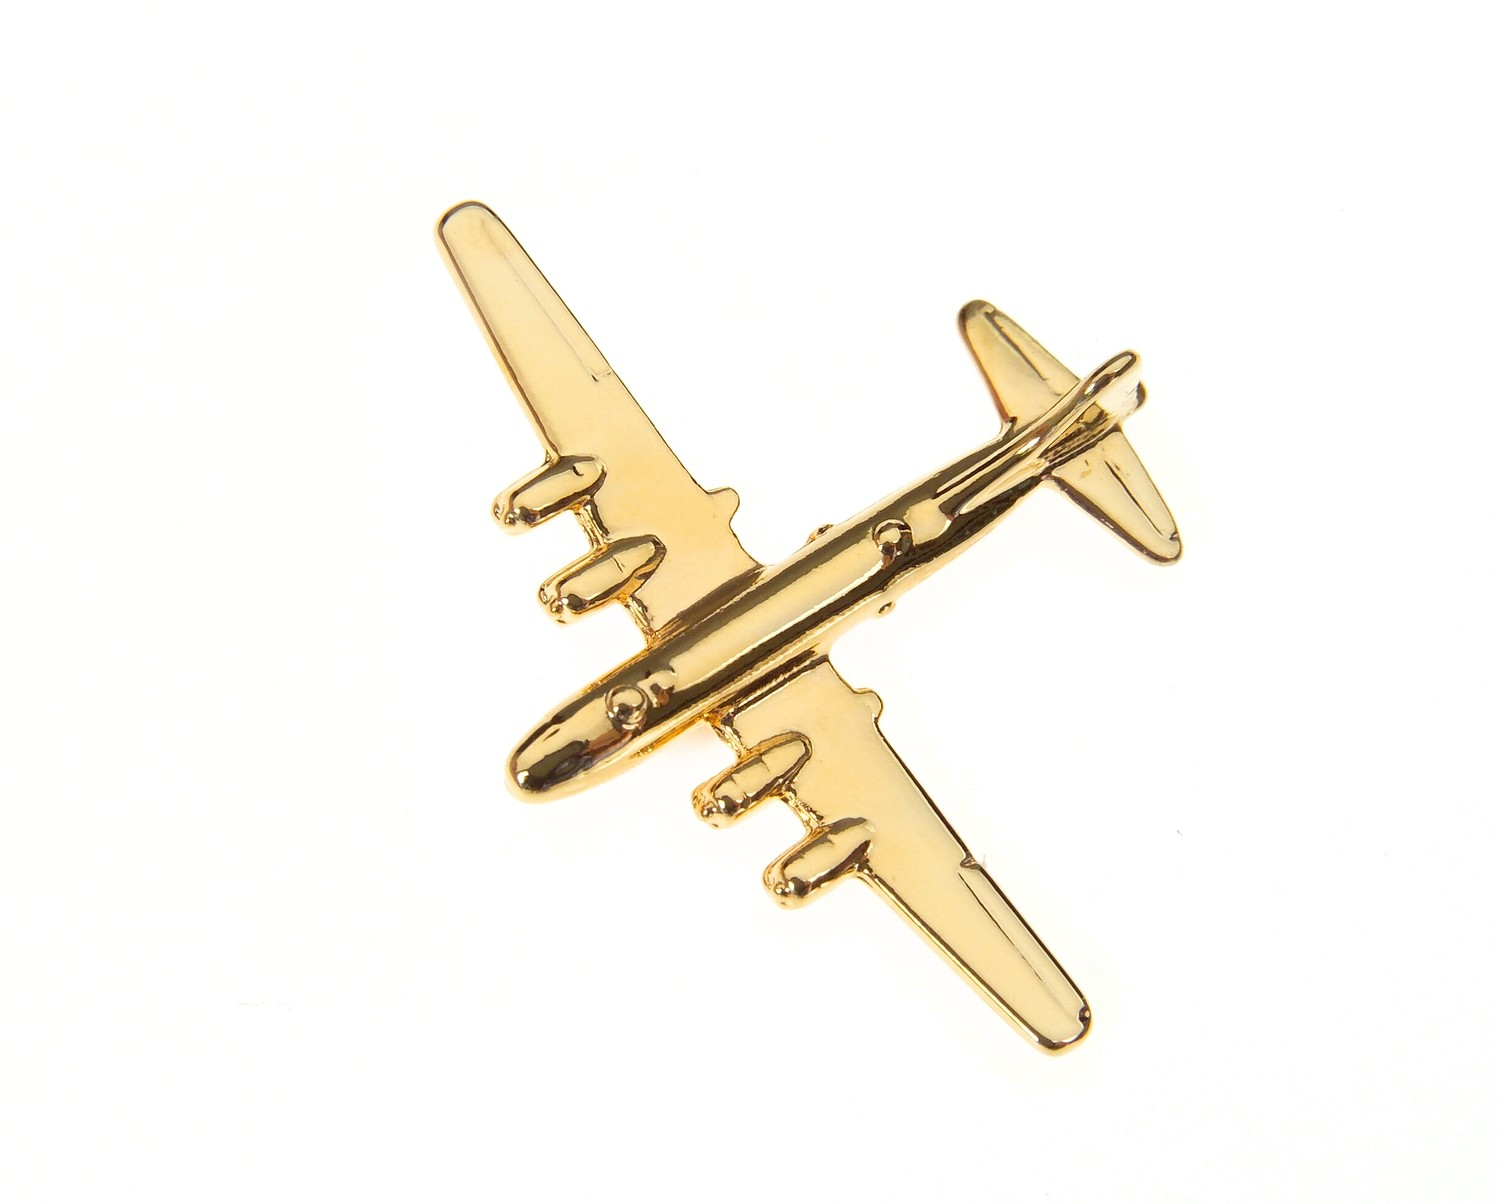 B29 Super Fortress Gold Plated Tie / Lapel Pin